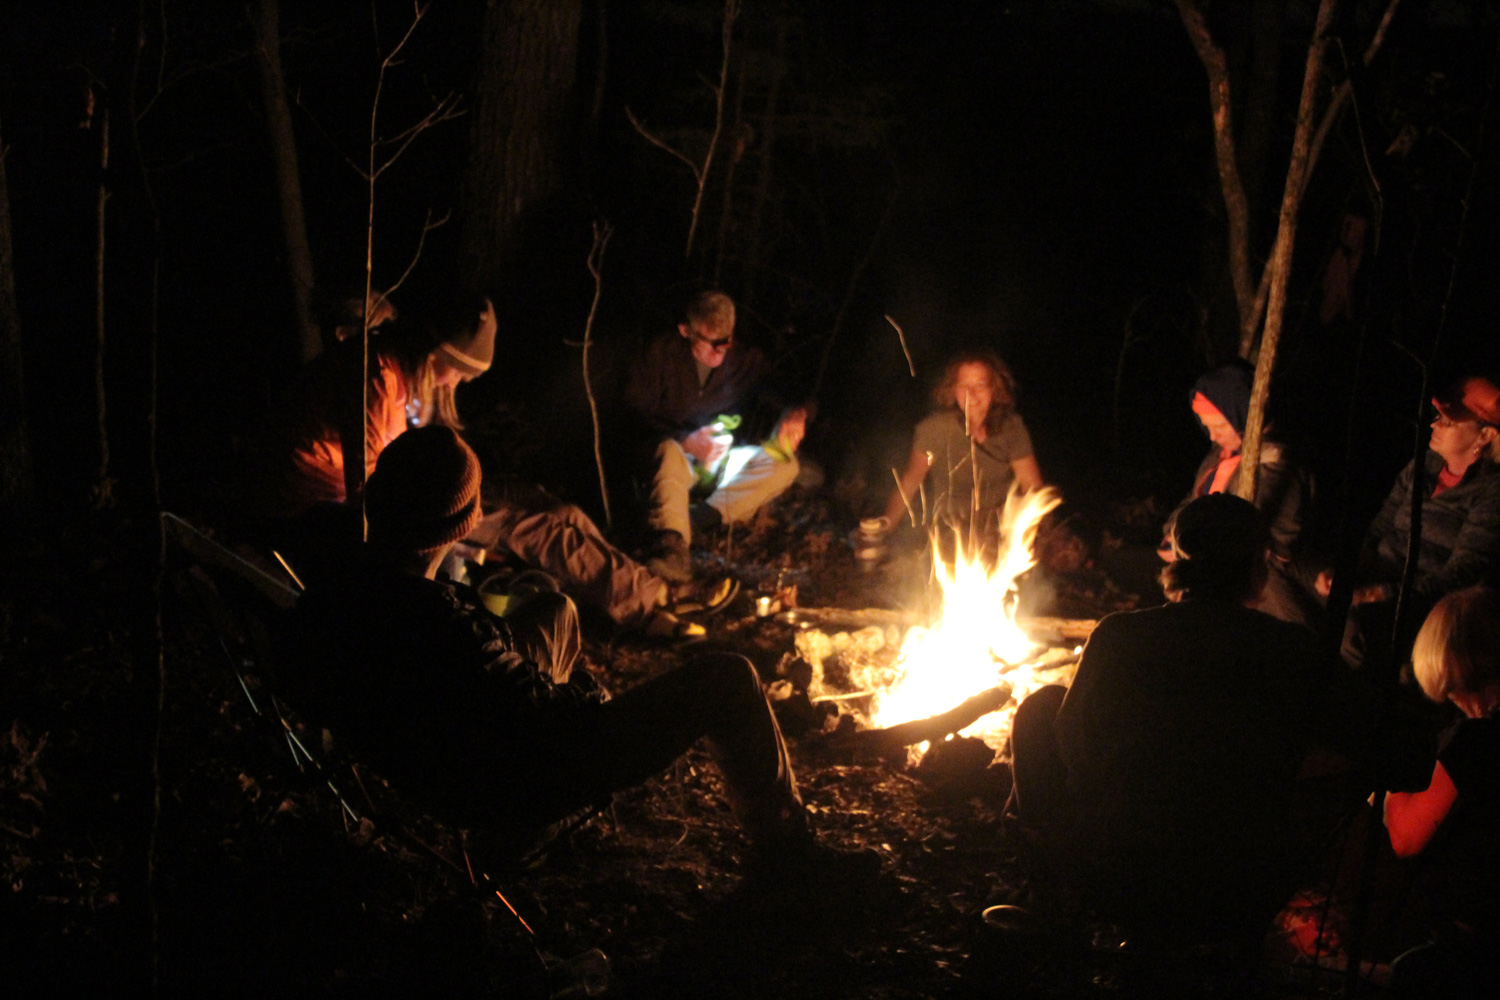 Dinner, adult beverages and conversation in the glow of a welcome campfire ends day one.